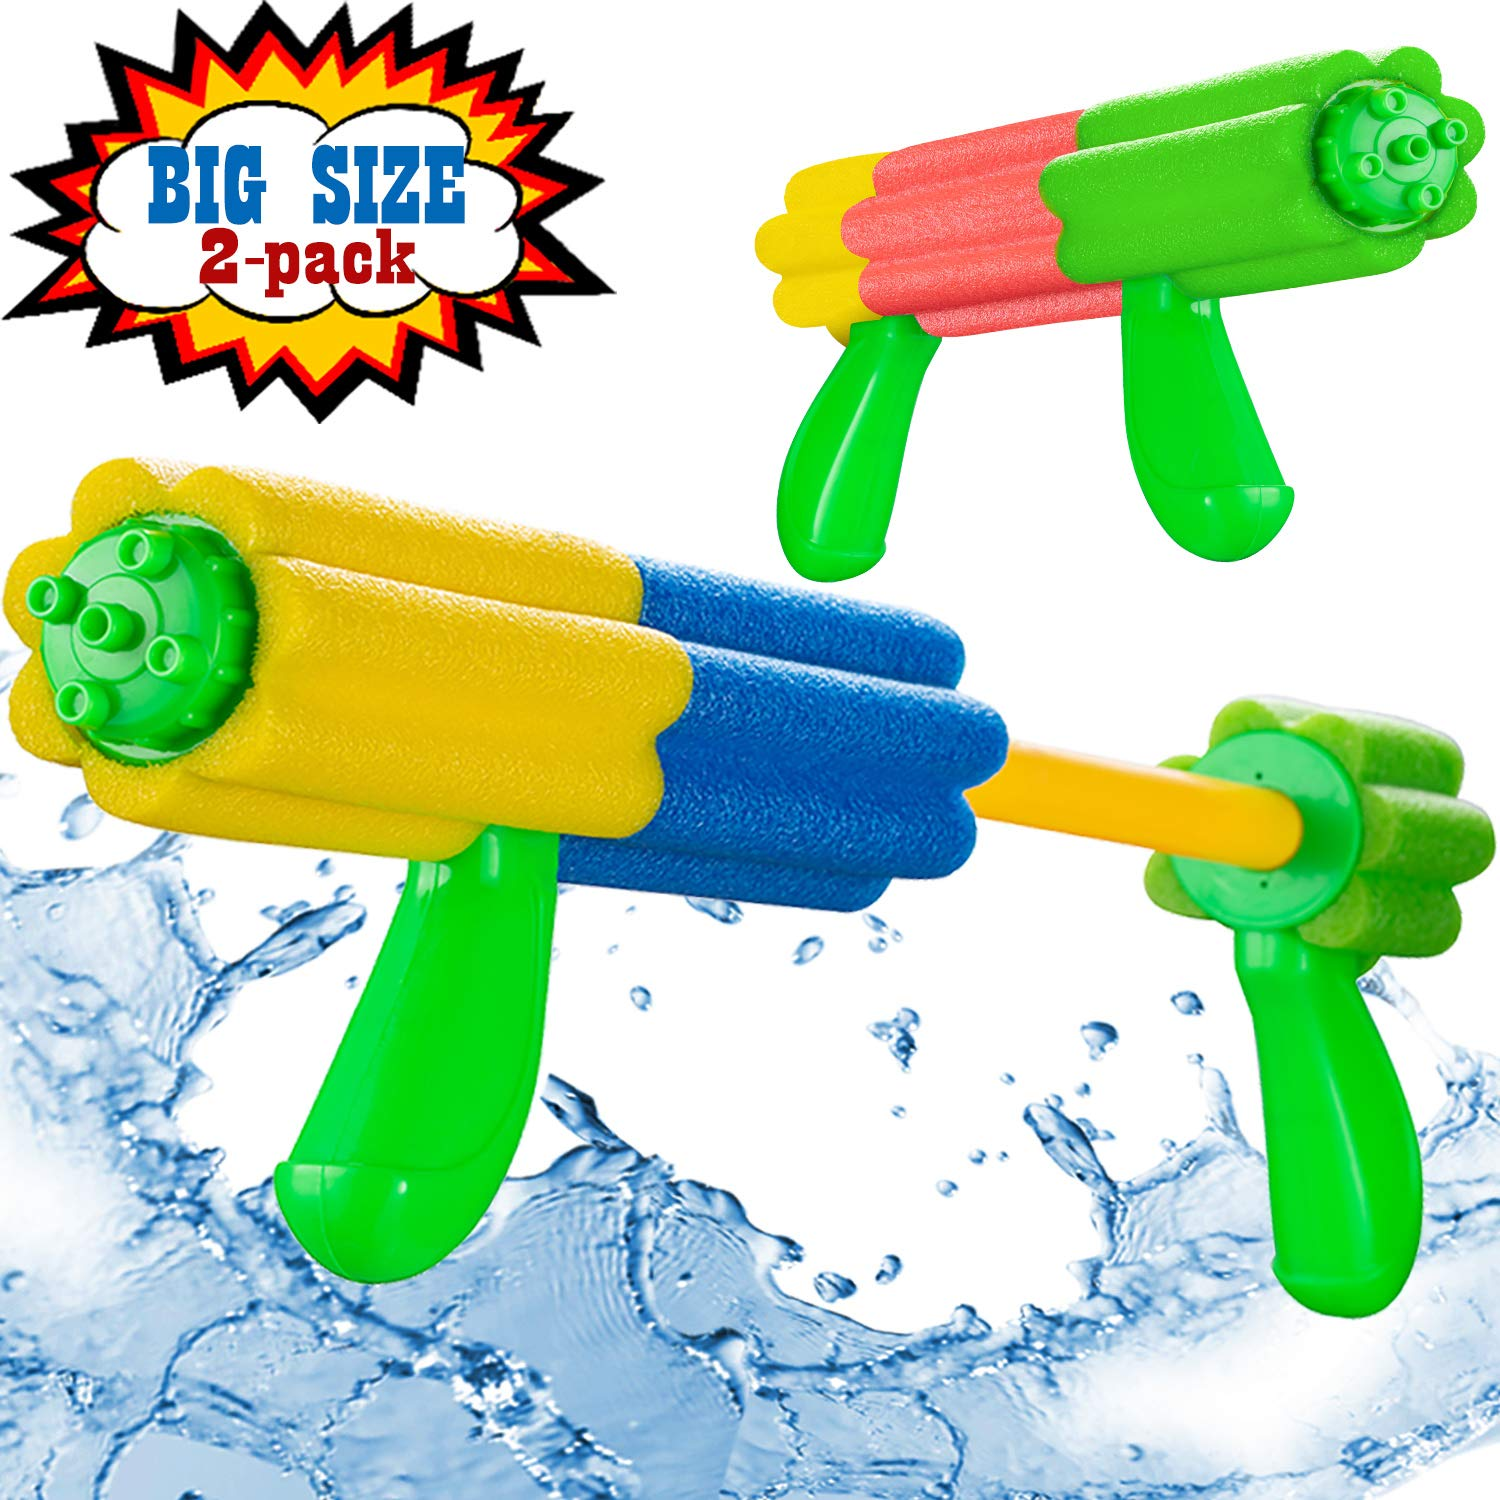 Aouker Water Blaster Gun Foam Soaker Water Pump Shooter, Light Weight Swimming Pool Beach Water Fighting Toys